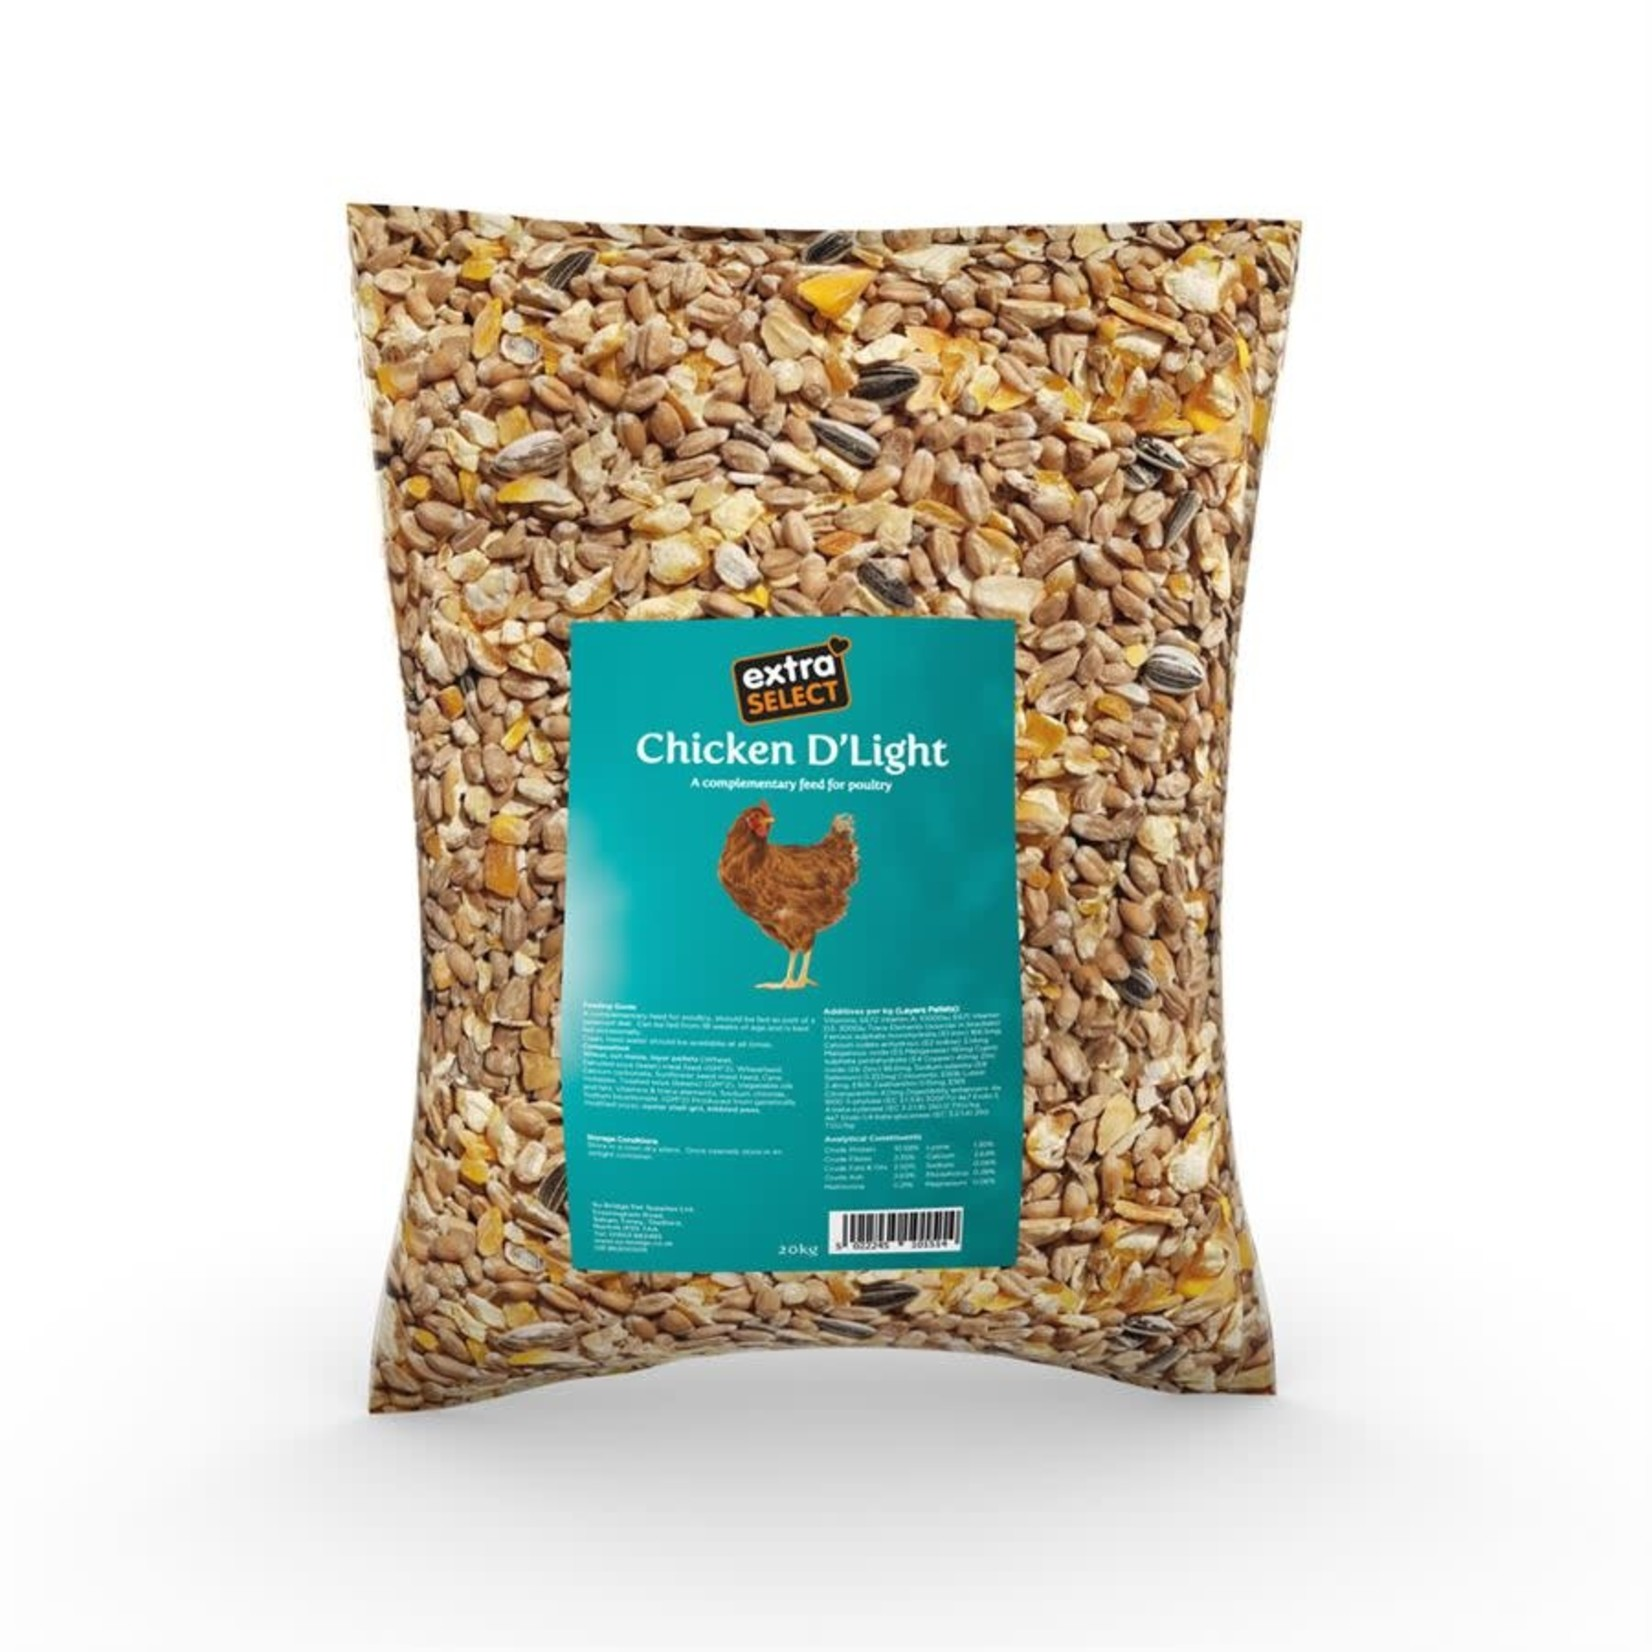 Extra Select Chicken D'Light Poultry Blend, 5kg